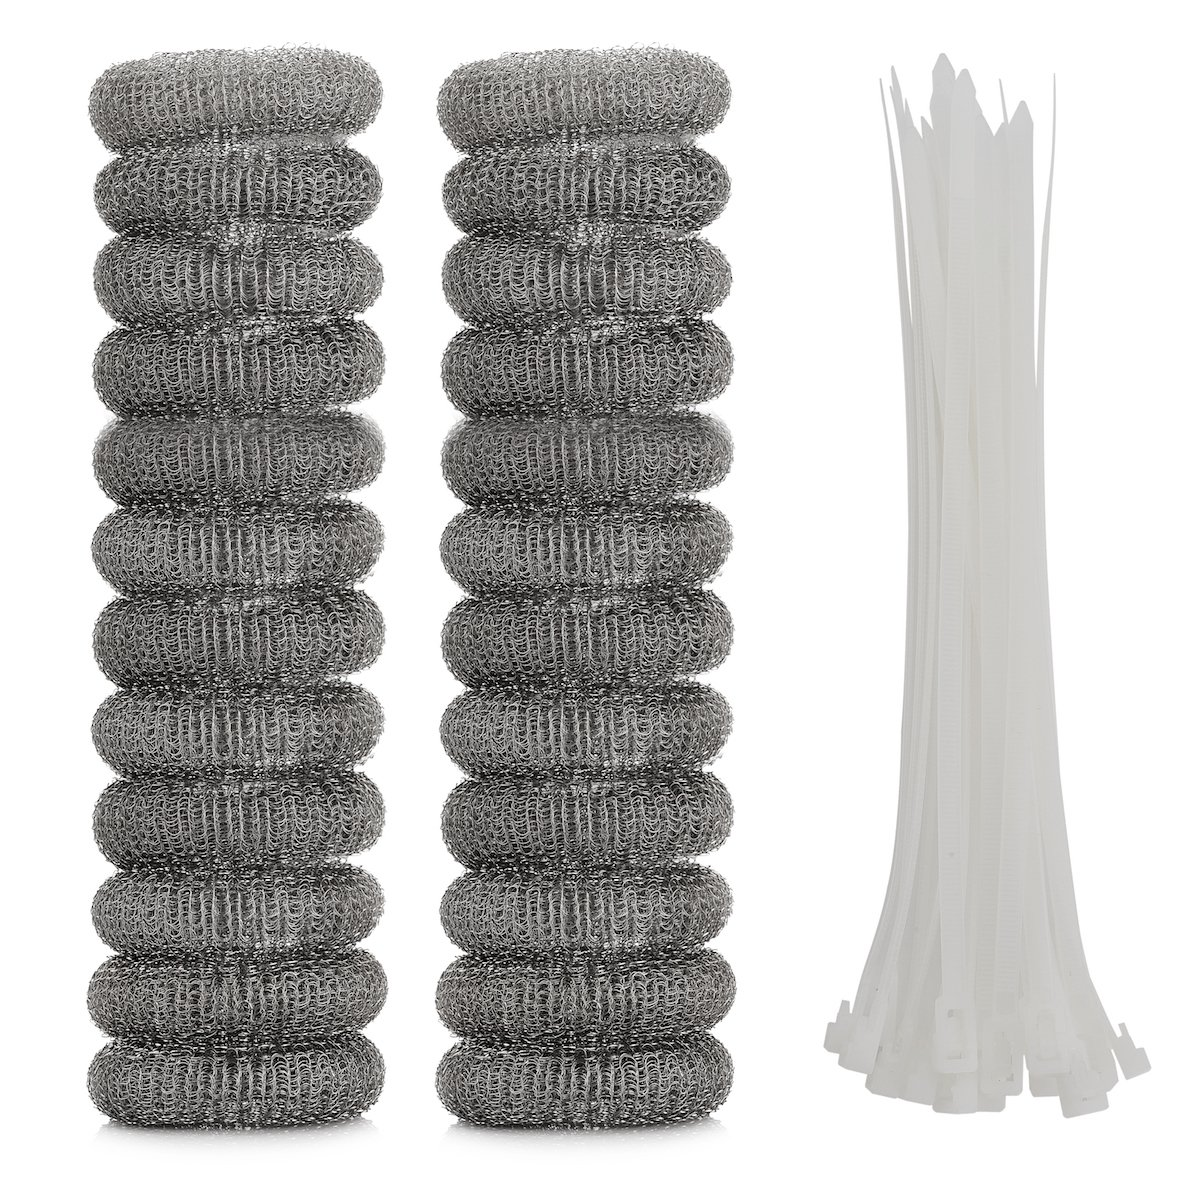 OnUpgo 24 Pack Lint Traps for Washing Machine Lint Trap Snare Laundry Mesh Washer Hose Filter with Nylon Cable Ties, Stainless Steel Mesh Filter Won't Rust, Easy Installation